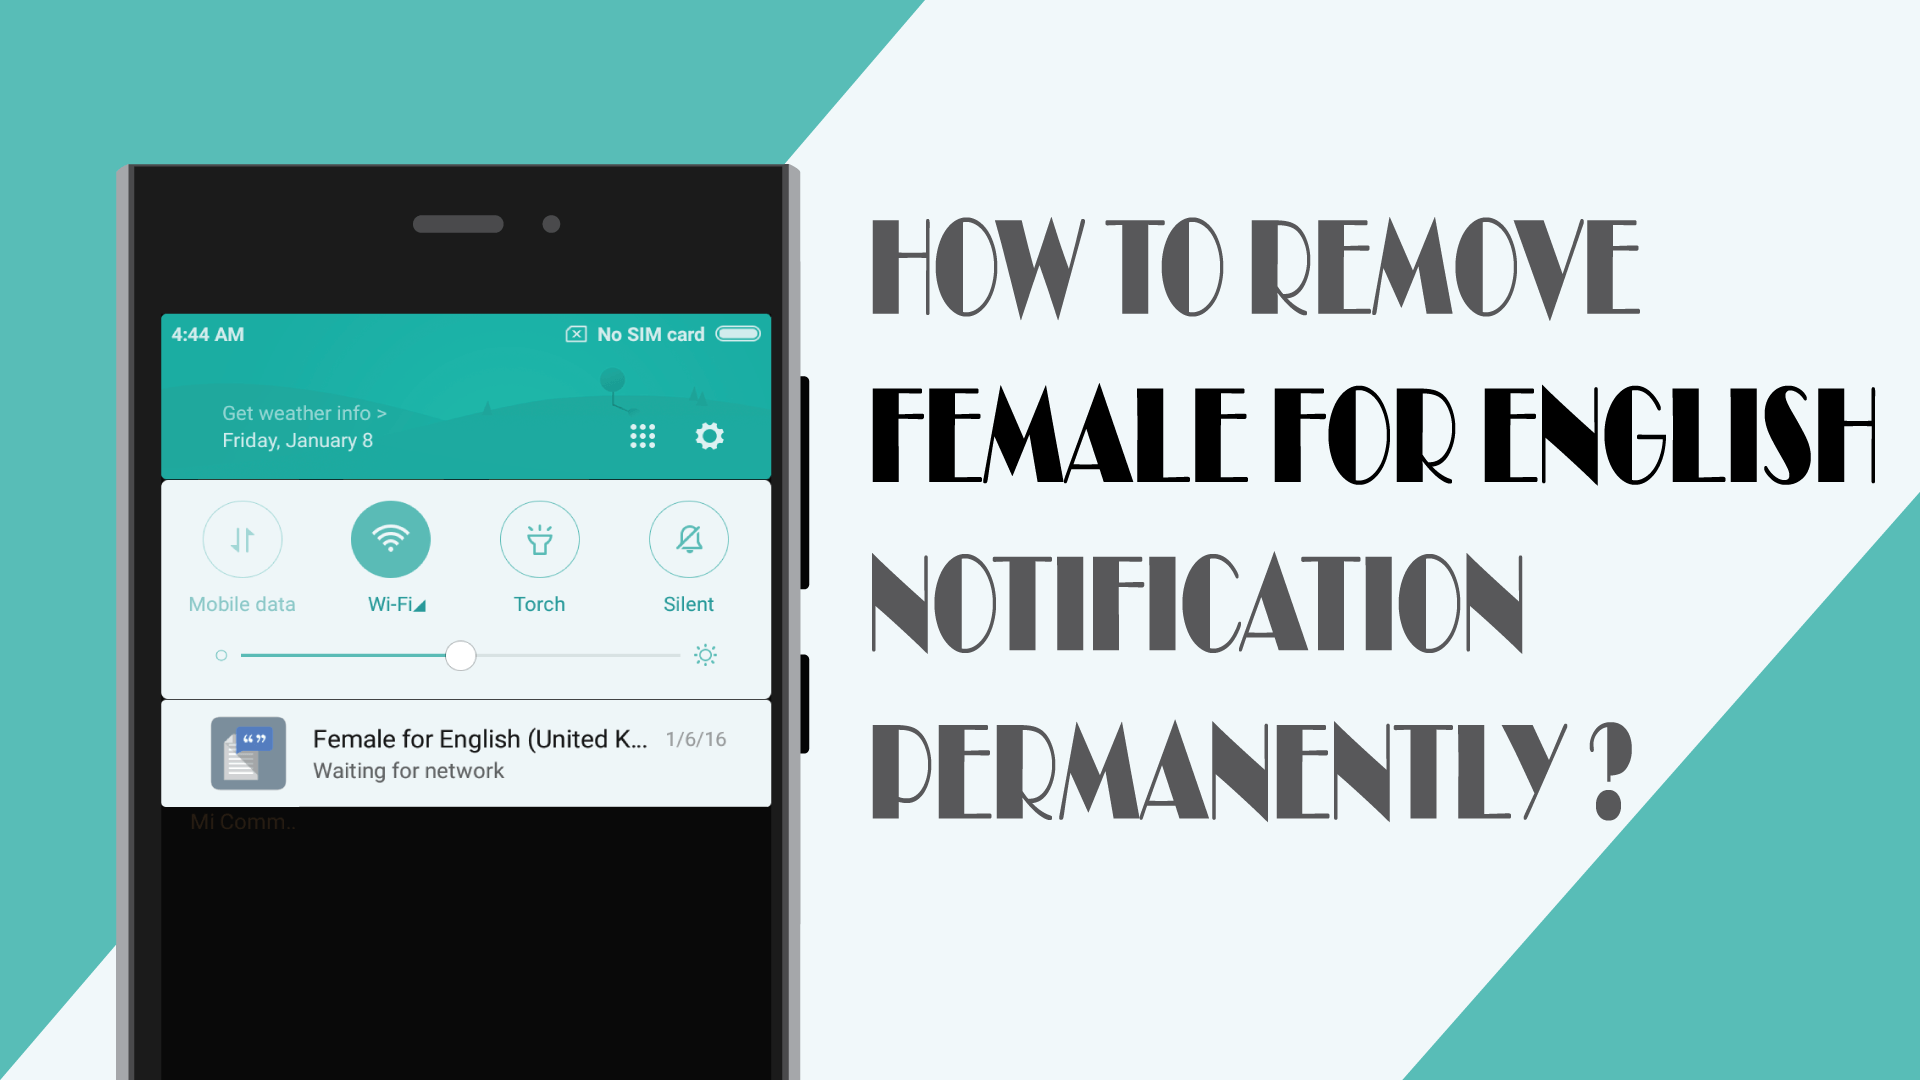 How to remove Female for English notification permanently? - MrNoob